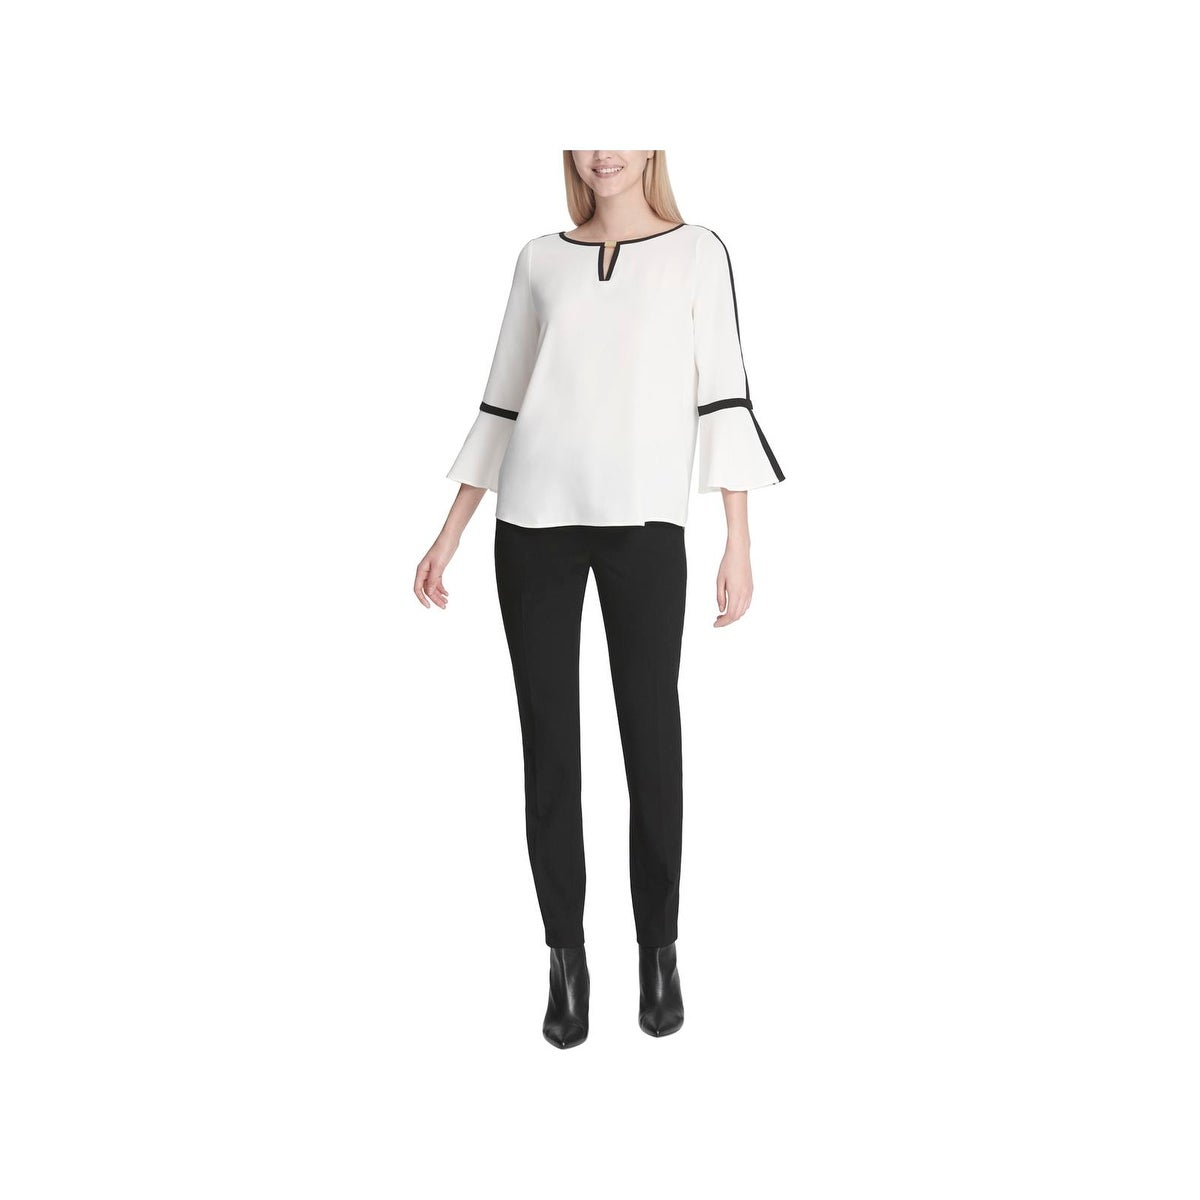 71488b6e81e Calvin Klein Tops | Find Great Women's Clothing Deals Shopping at Overstock